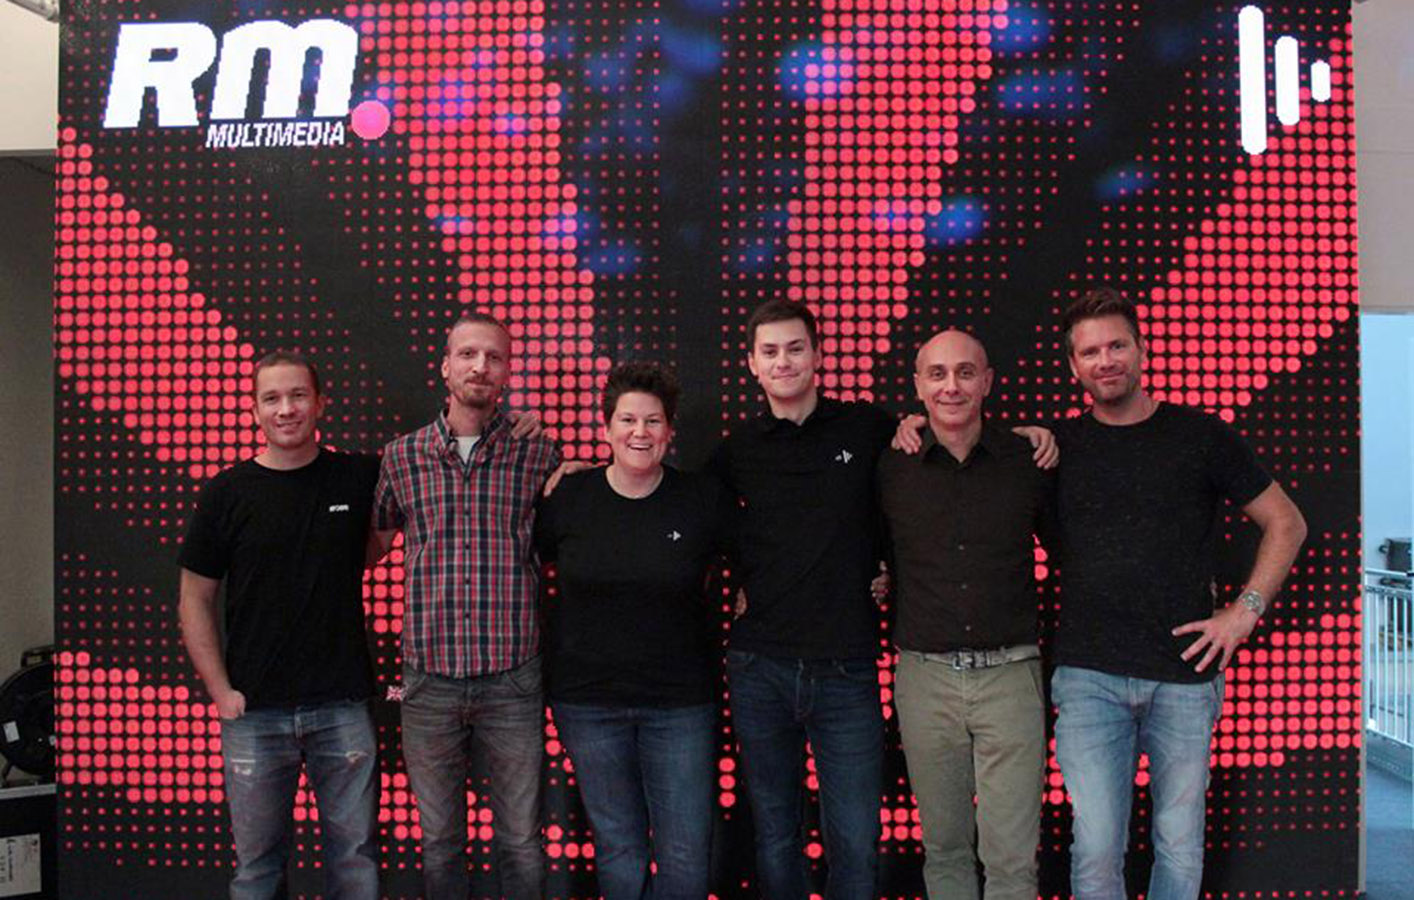 RM Multimedia announced as disguise Sales partner